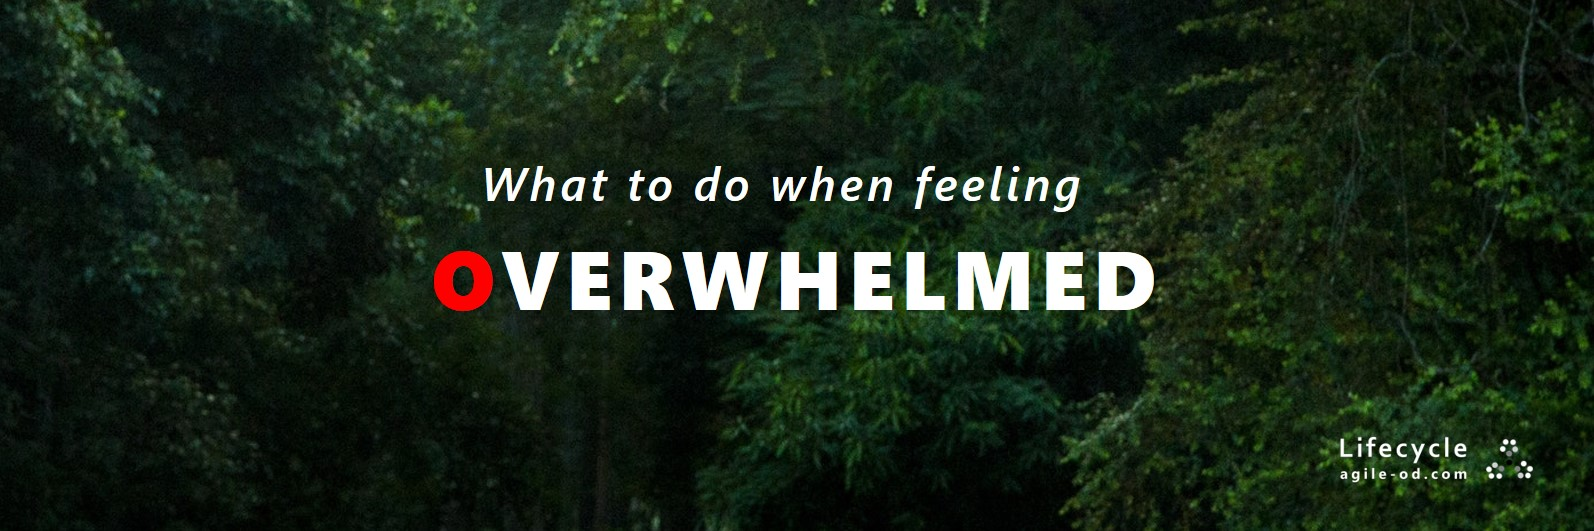 What to do when feeling overwhelmed